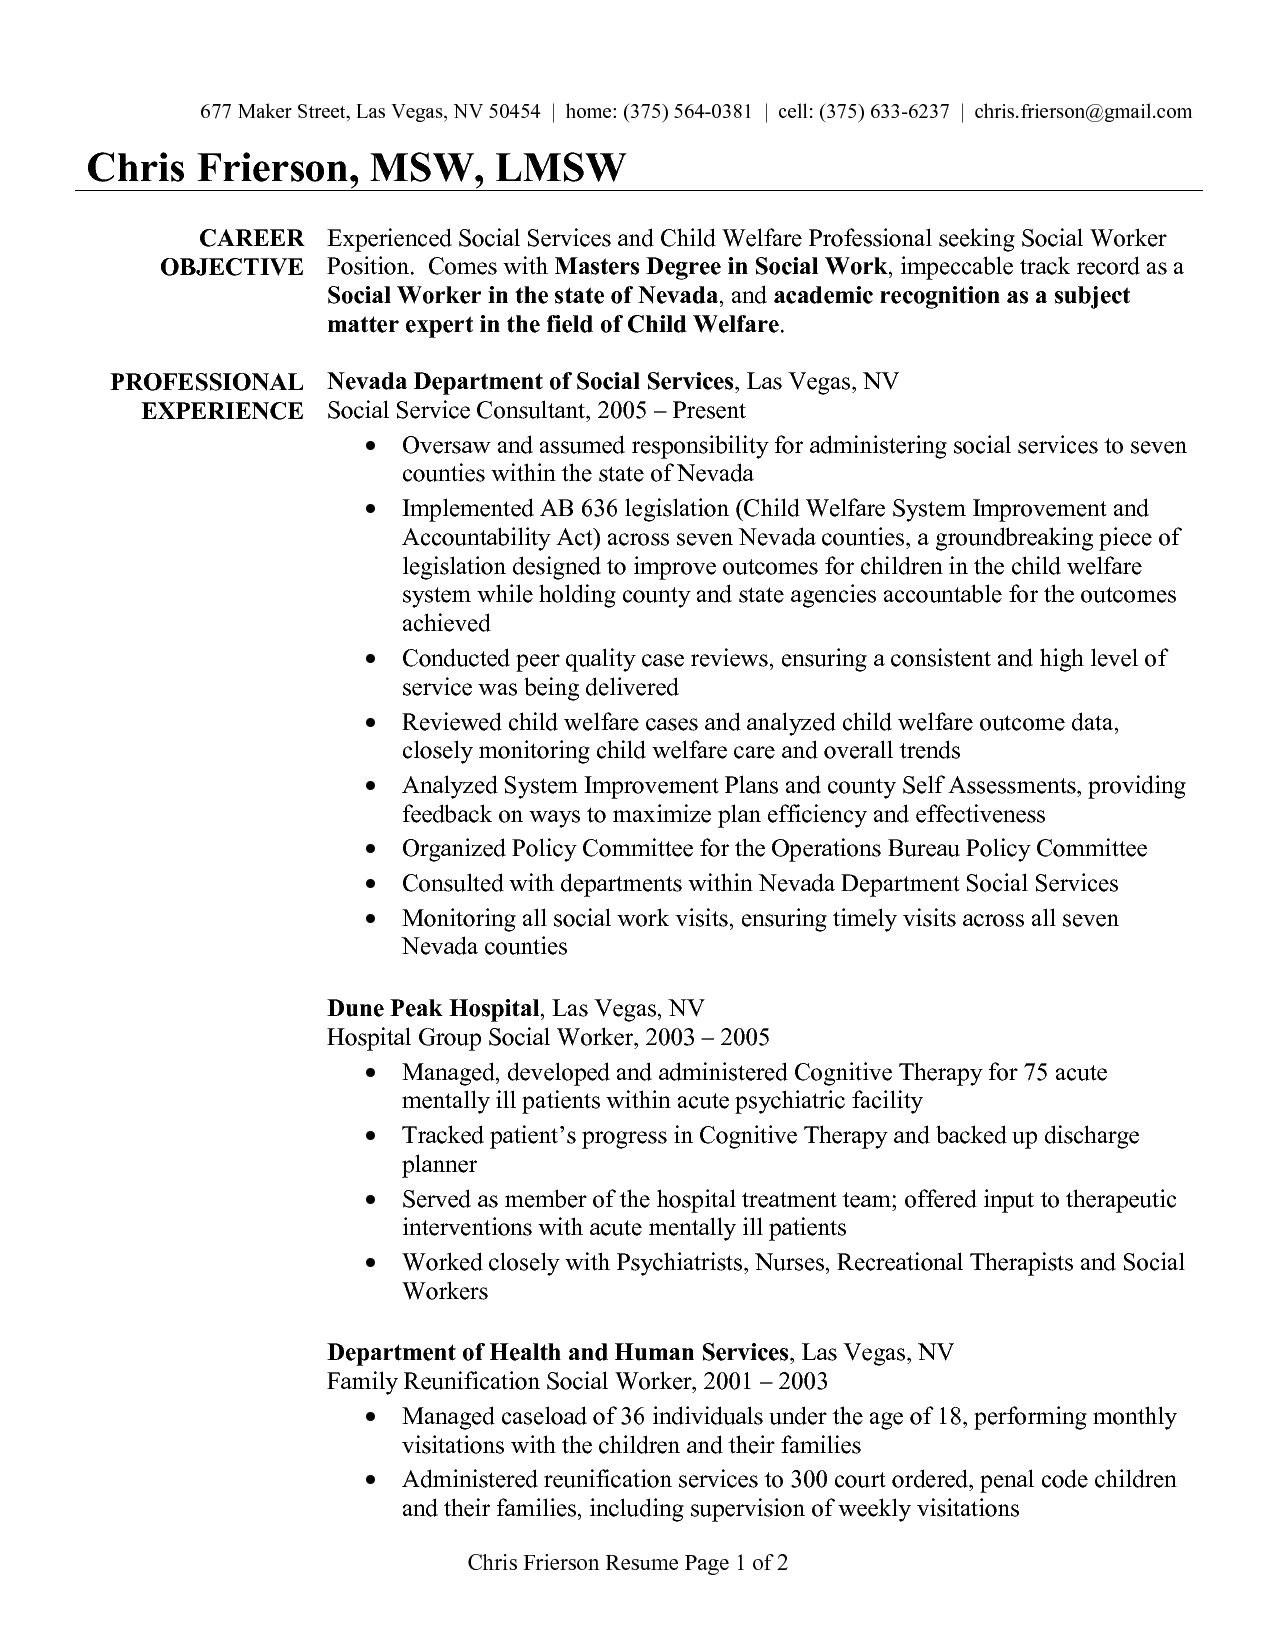 school social work resume - Boat.jeremyeaton.co